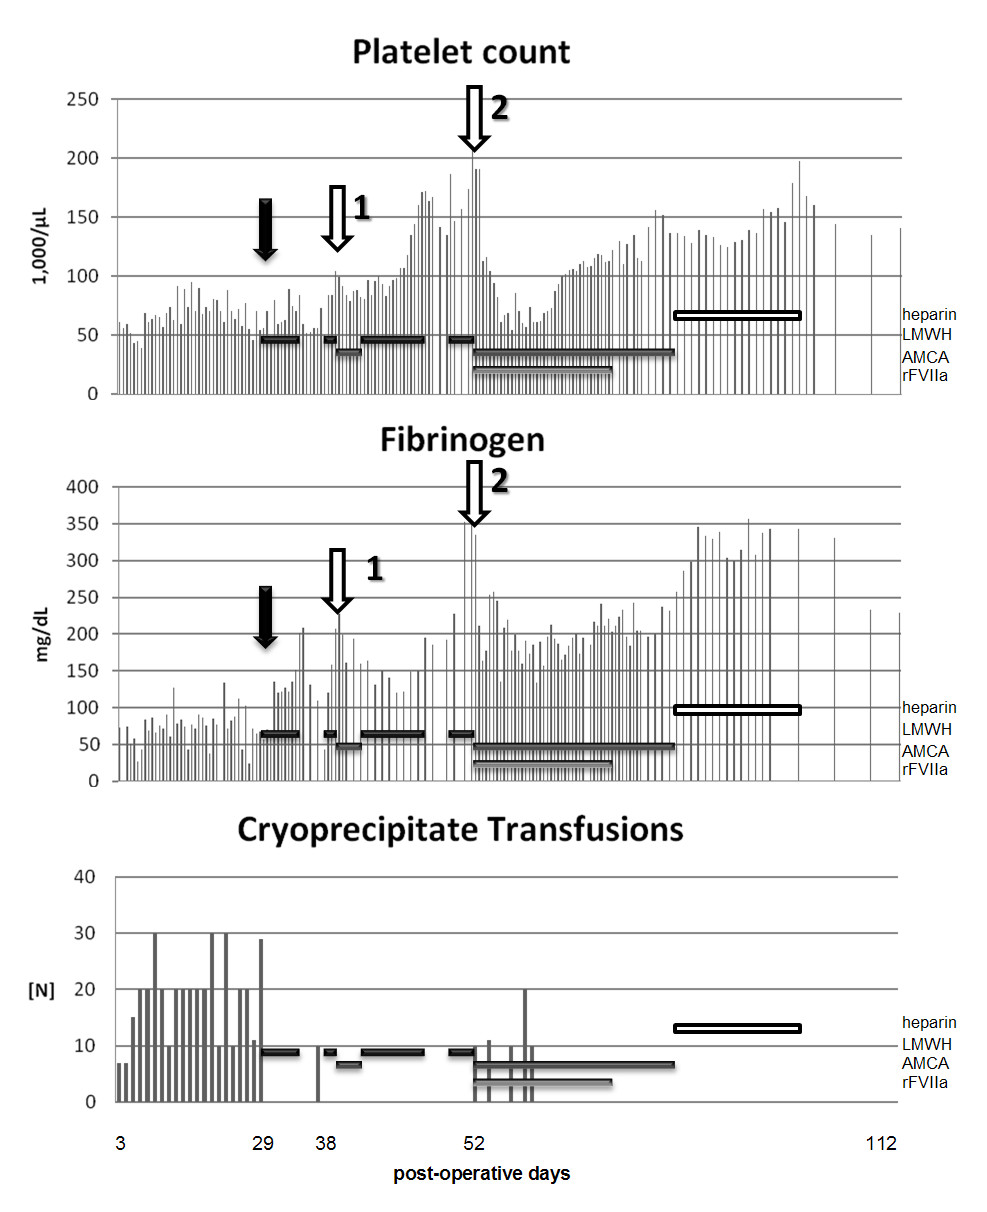 http://static-content.springer.com/image/art%3A10.1186%2F1752-1947-4-92/MediaObjects/13256_2008_Article_1053_Fig1_HTML.jpg